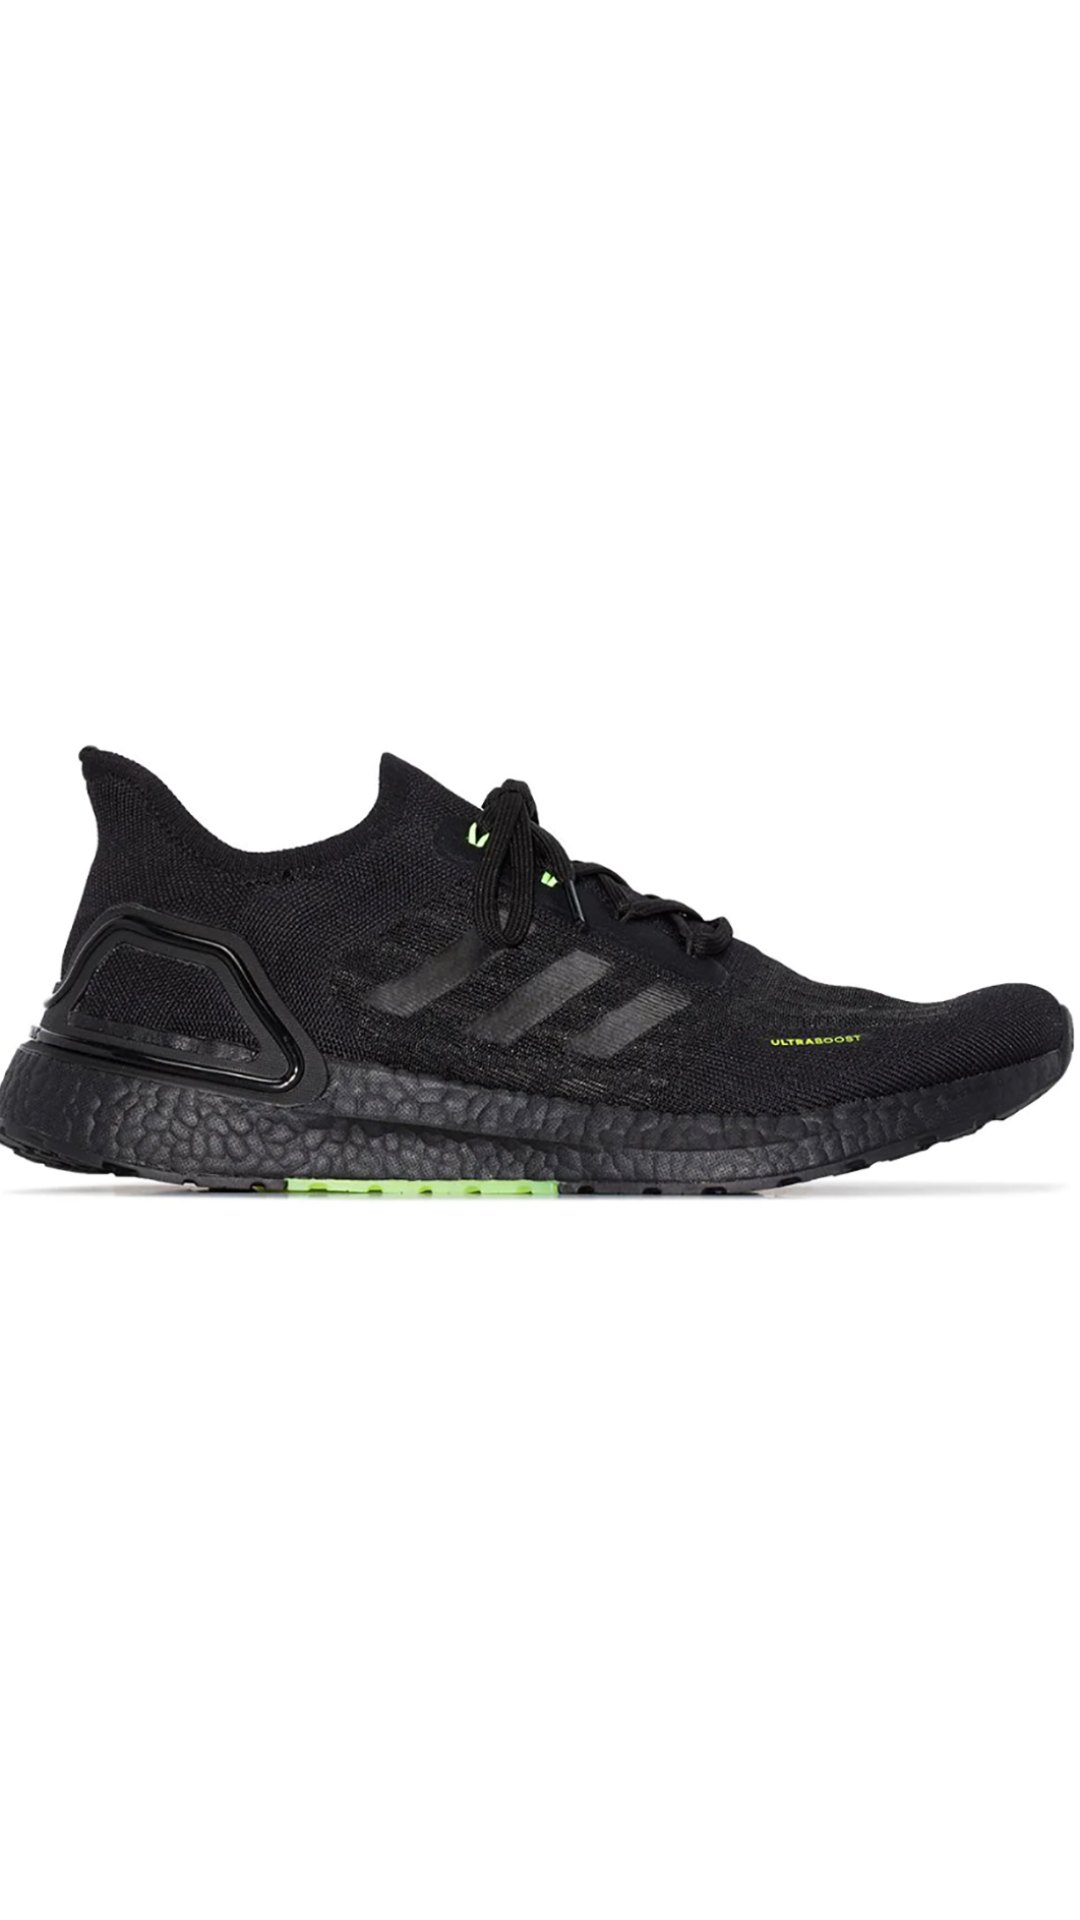 AdidasUltraboost RDY sneakers